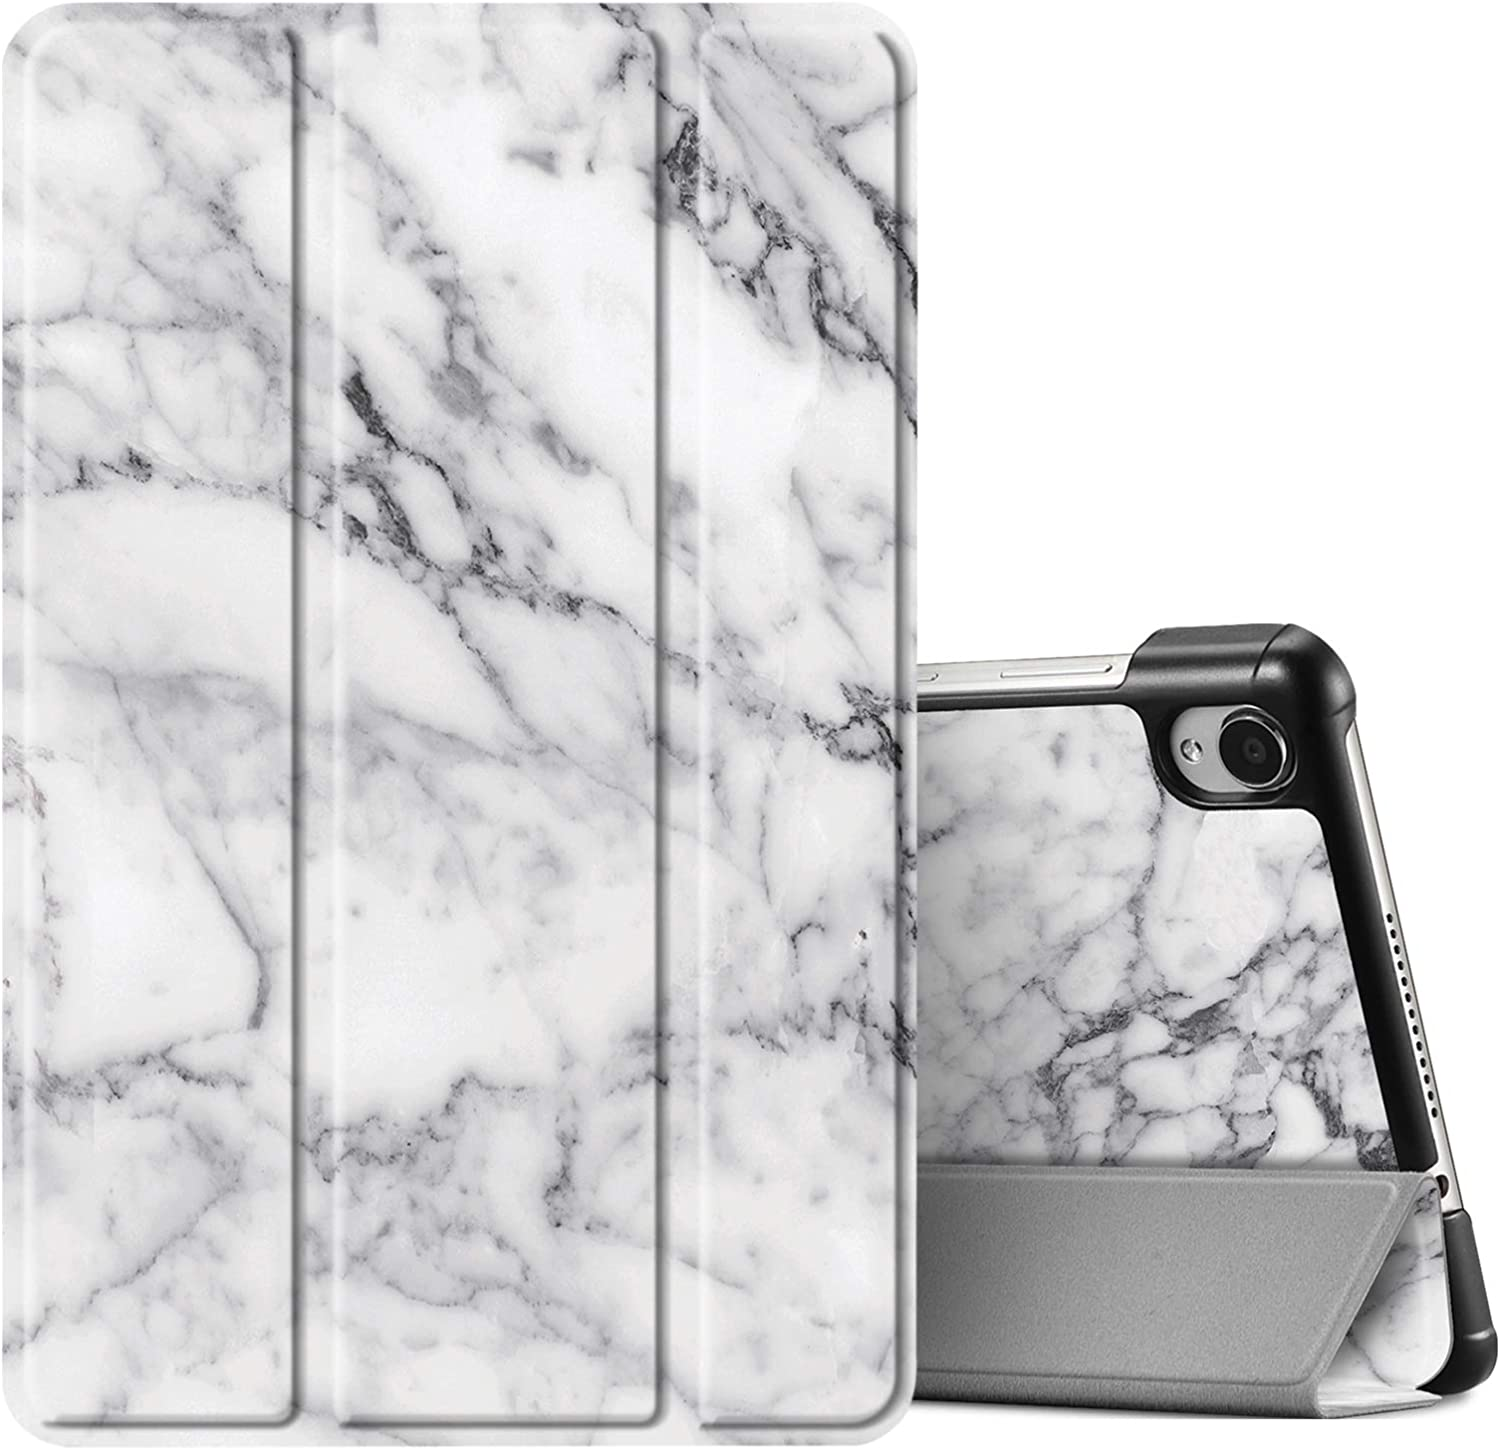 Fintie Case for Lenovo Tab M8 / Smart Tab M8 / Tab M8 FHD - Lightweight Slim Shell Stand Cover for Lenovo Tab M8-HD (2nd Gen) TB-8505F / TB-8505X 2019 8.0 Inch Android Tablet, Marble White